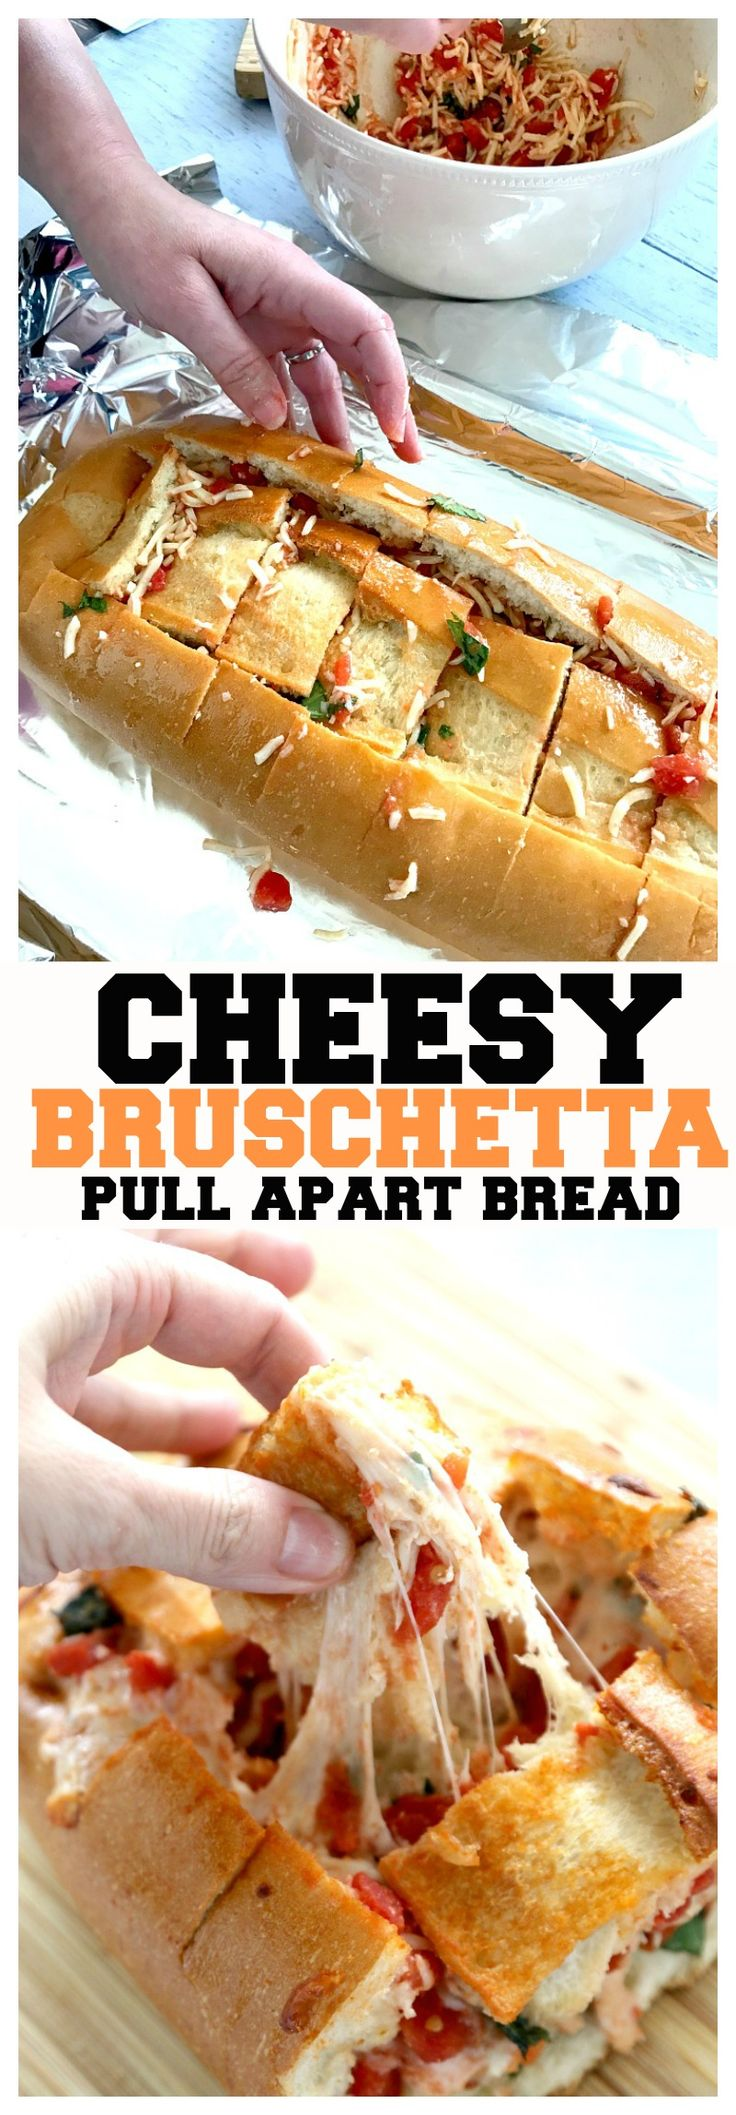 Cheesy Bruschetta Pull-Apart Bread recipe, this cheesy bruschetta is simple cutting a loaf of bread, stuffing with tomatoes, mozzarella cheese, and basil